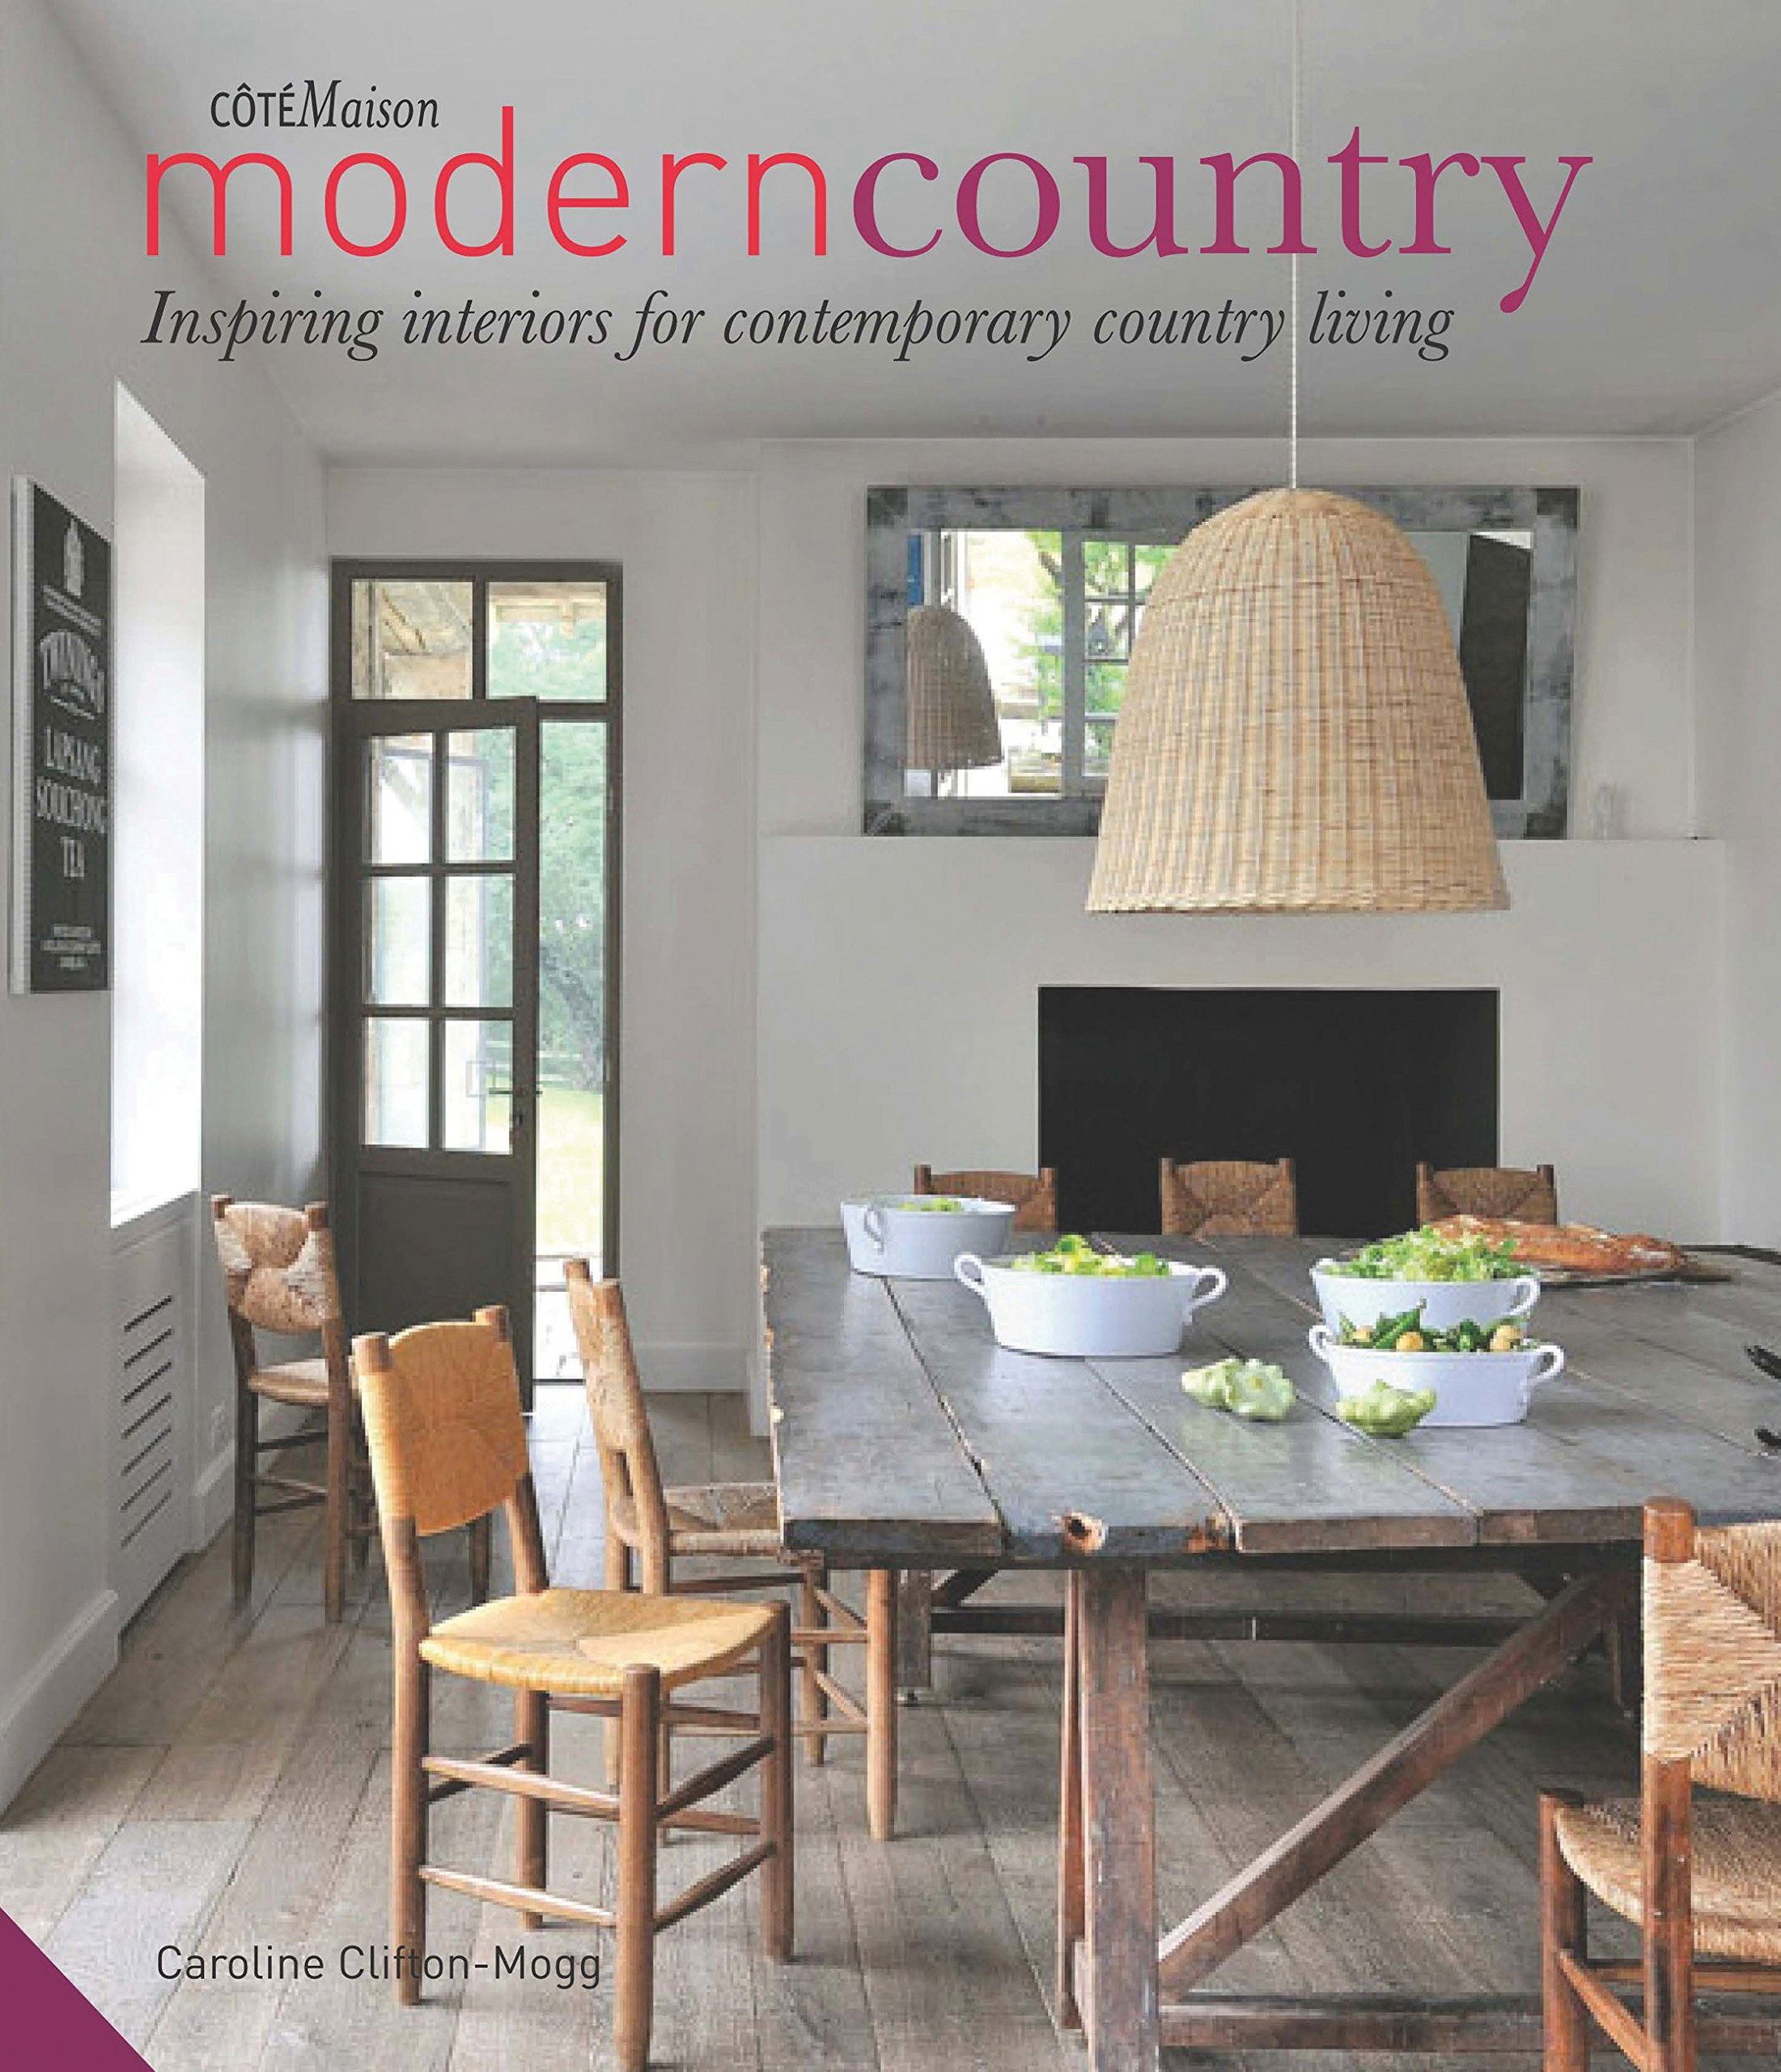 Delightful Modern Country: Inspiring Interiors For Contemporary Country Living